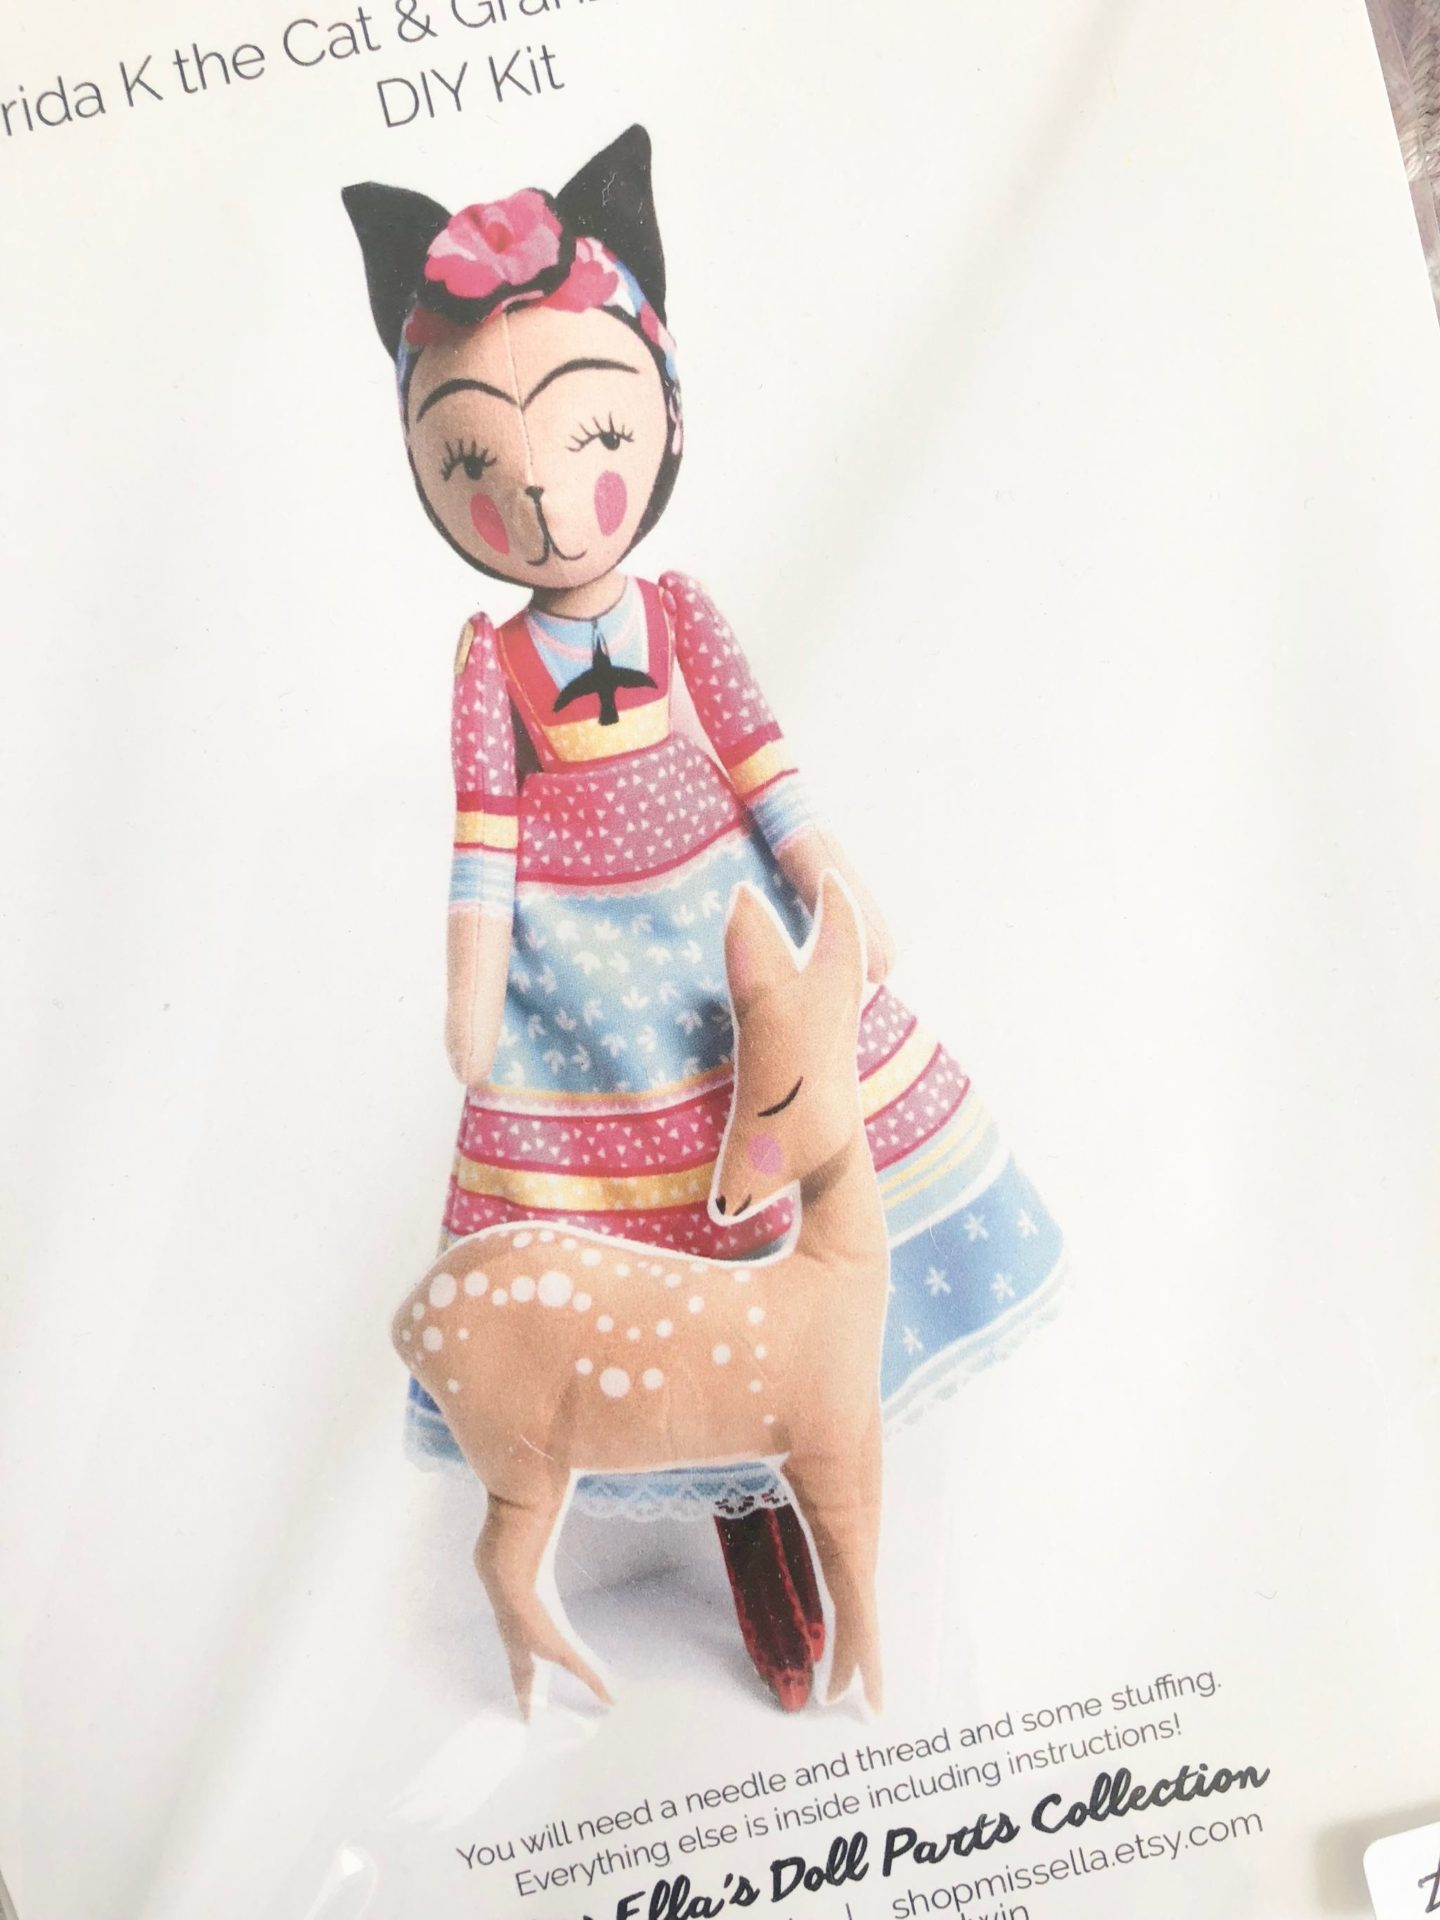 miss ellas doll diy kit